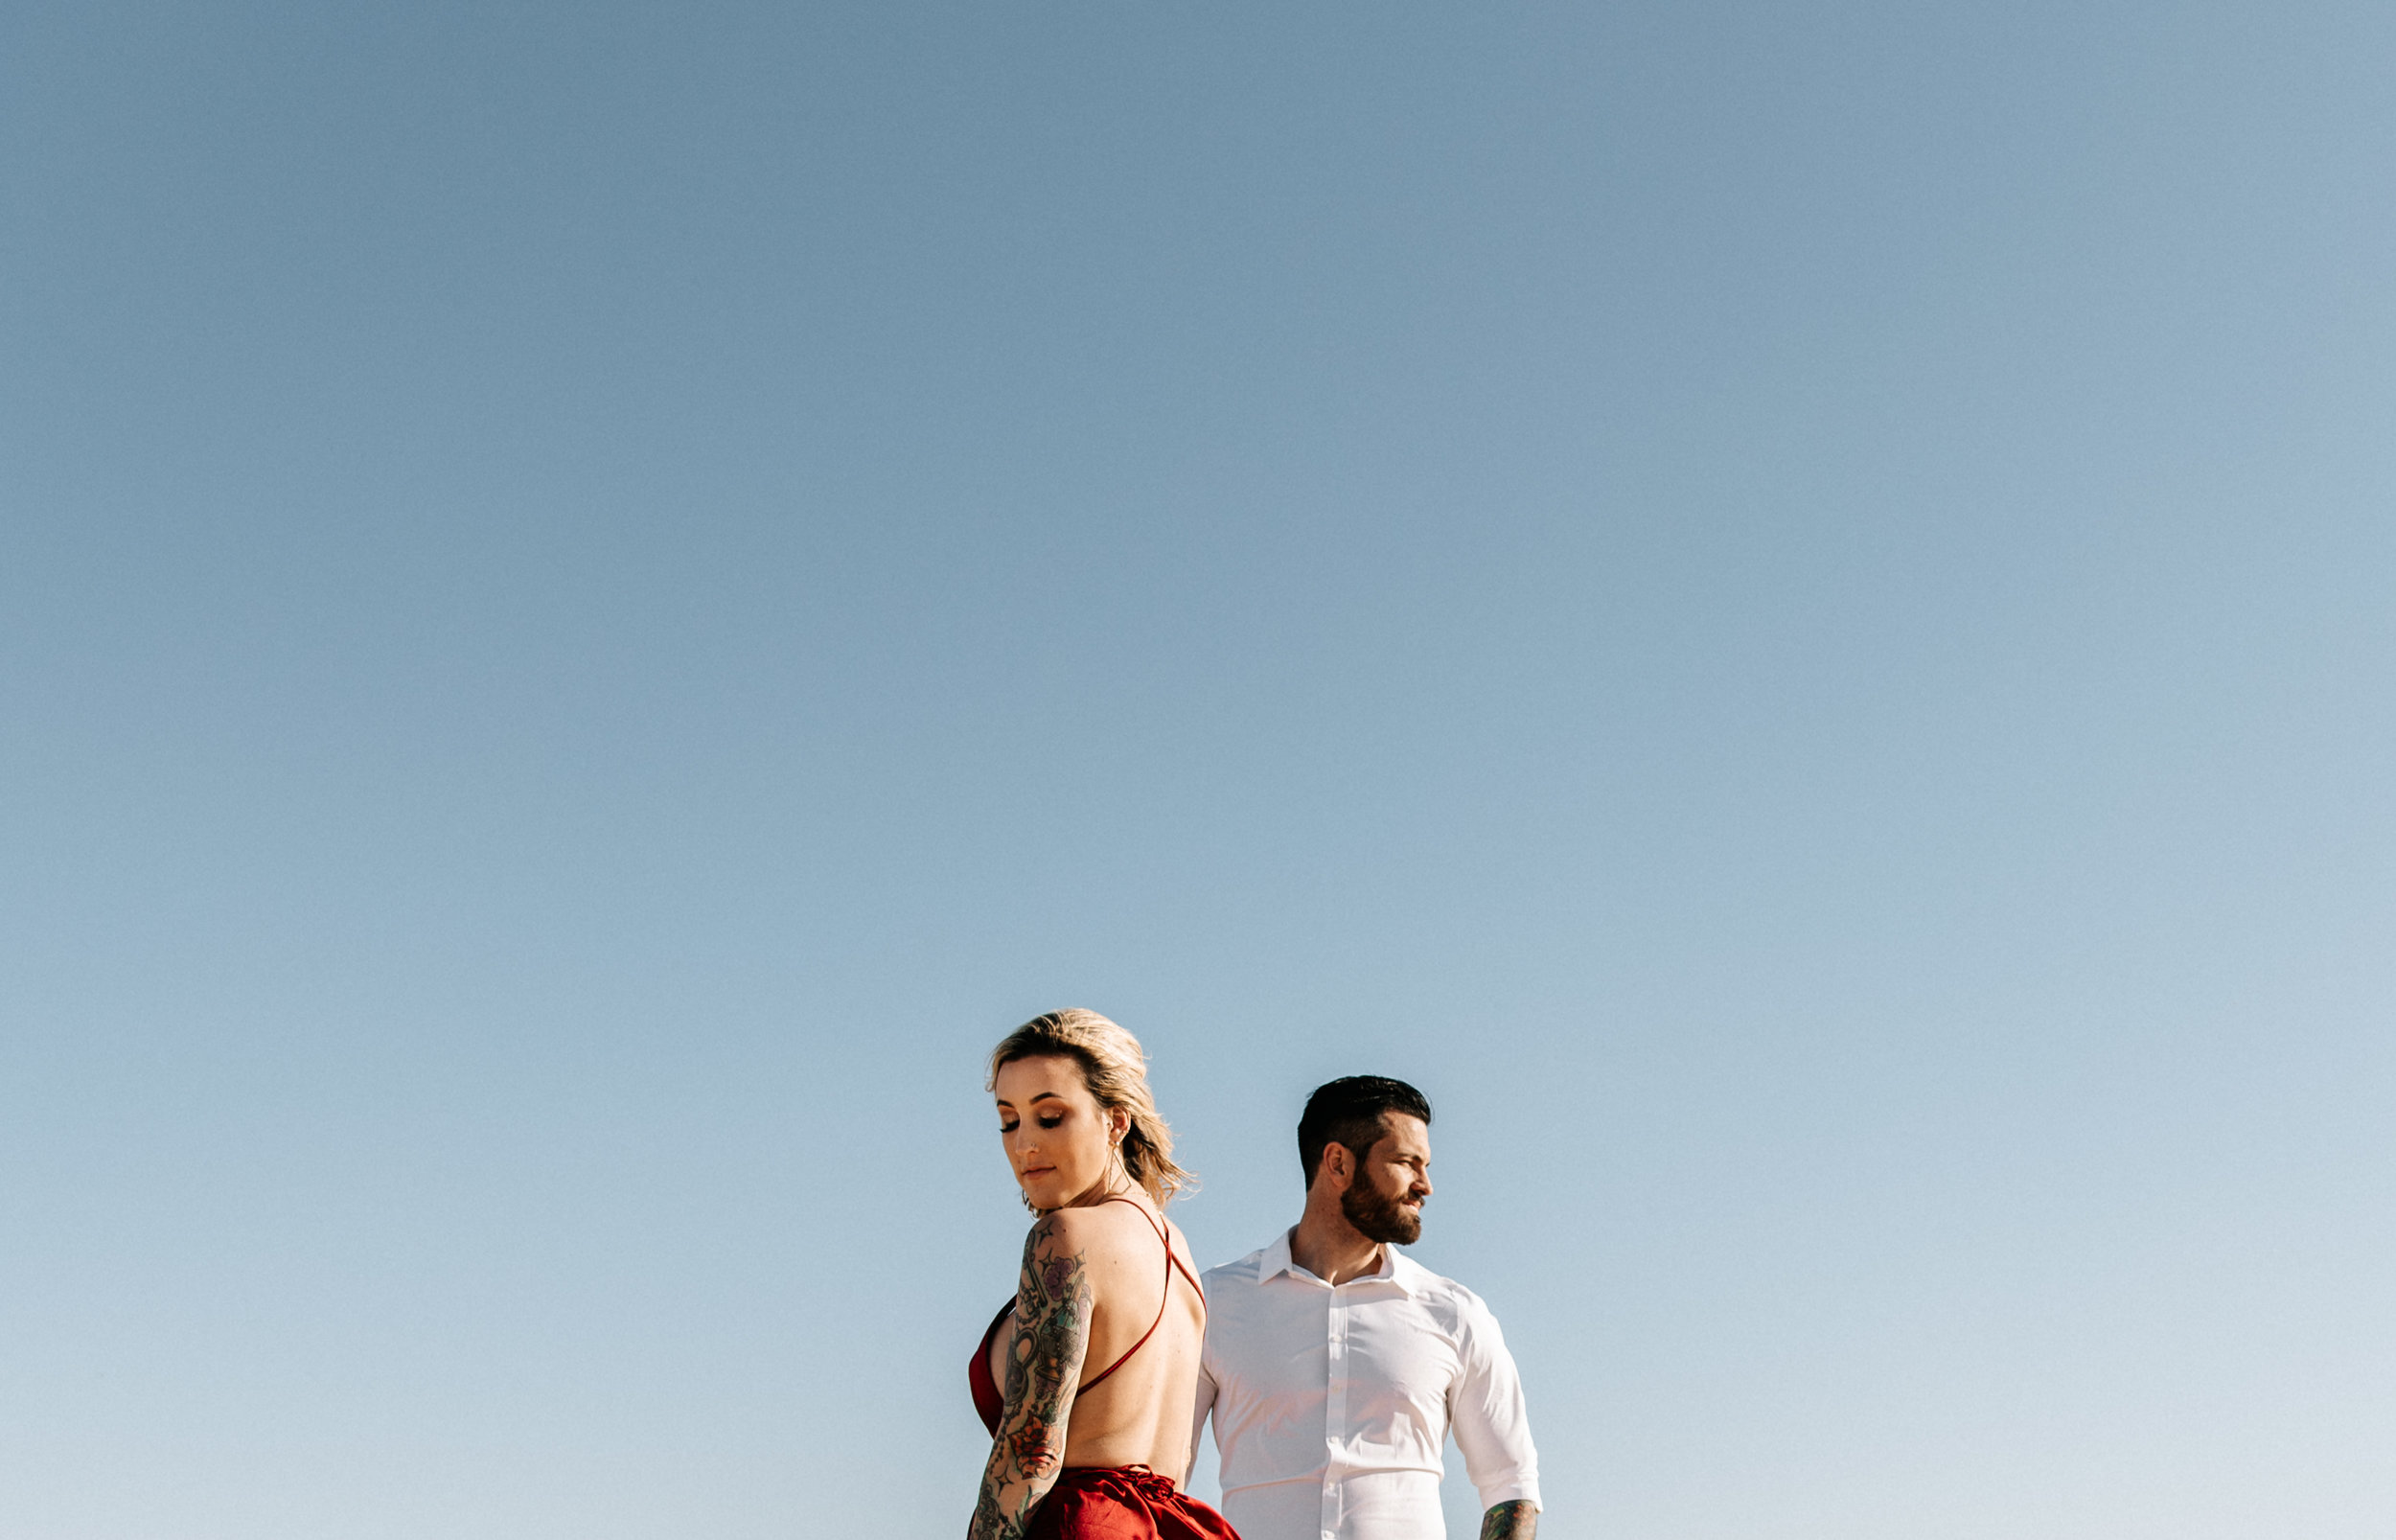 SamErica Studios - Modern San Diego Engagement Photographer - Adventure Engagement Session in Glamis Sand Dunes California-23.jpg